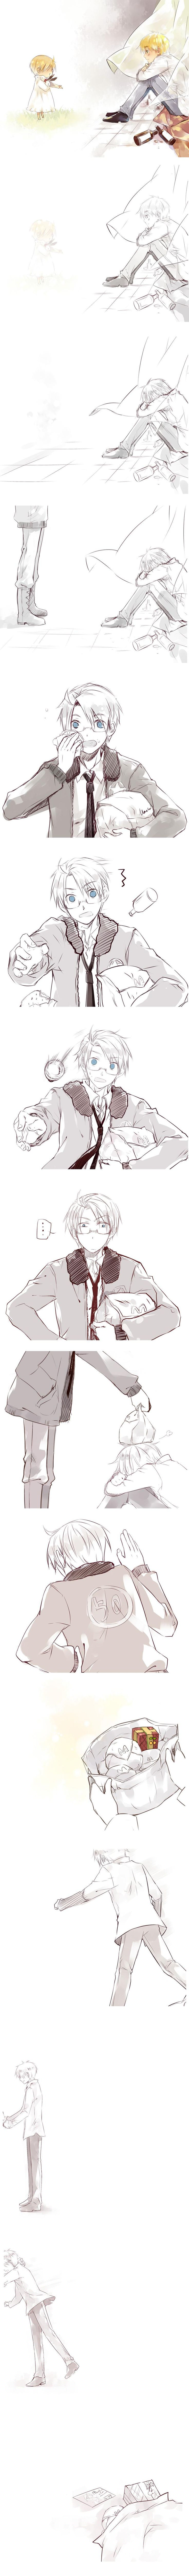 Arthur's feeling down and reminiscing about the past (again) when Alfred shows up.... - Art by Saiyki So adorable